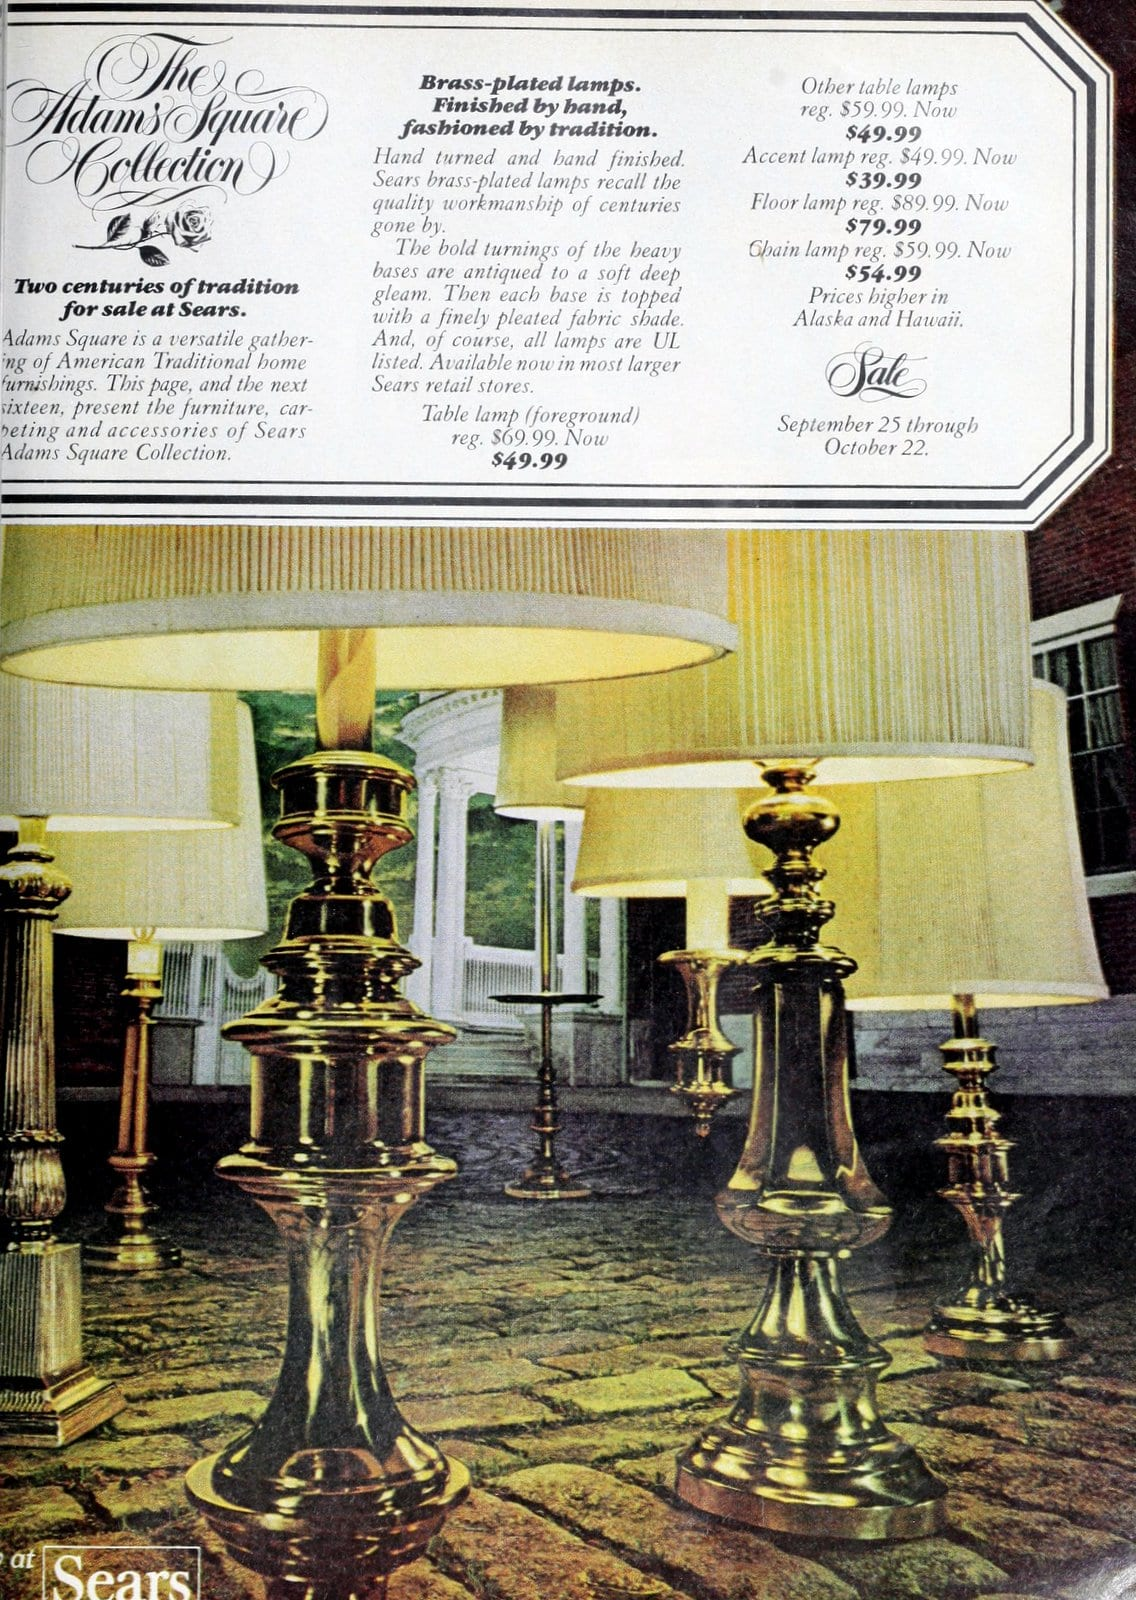 Vintage brass lamp bases - Home decor from 1977